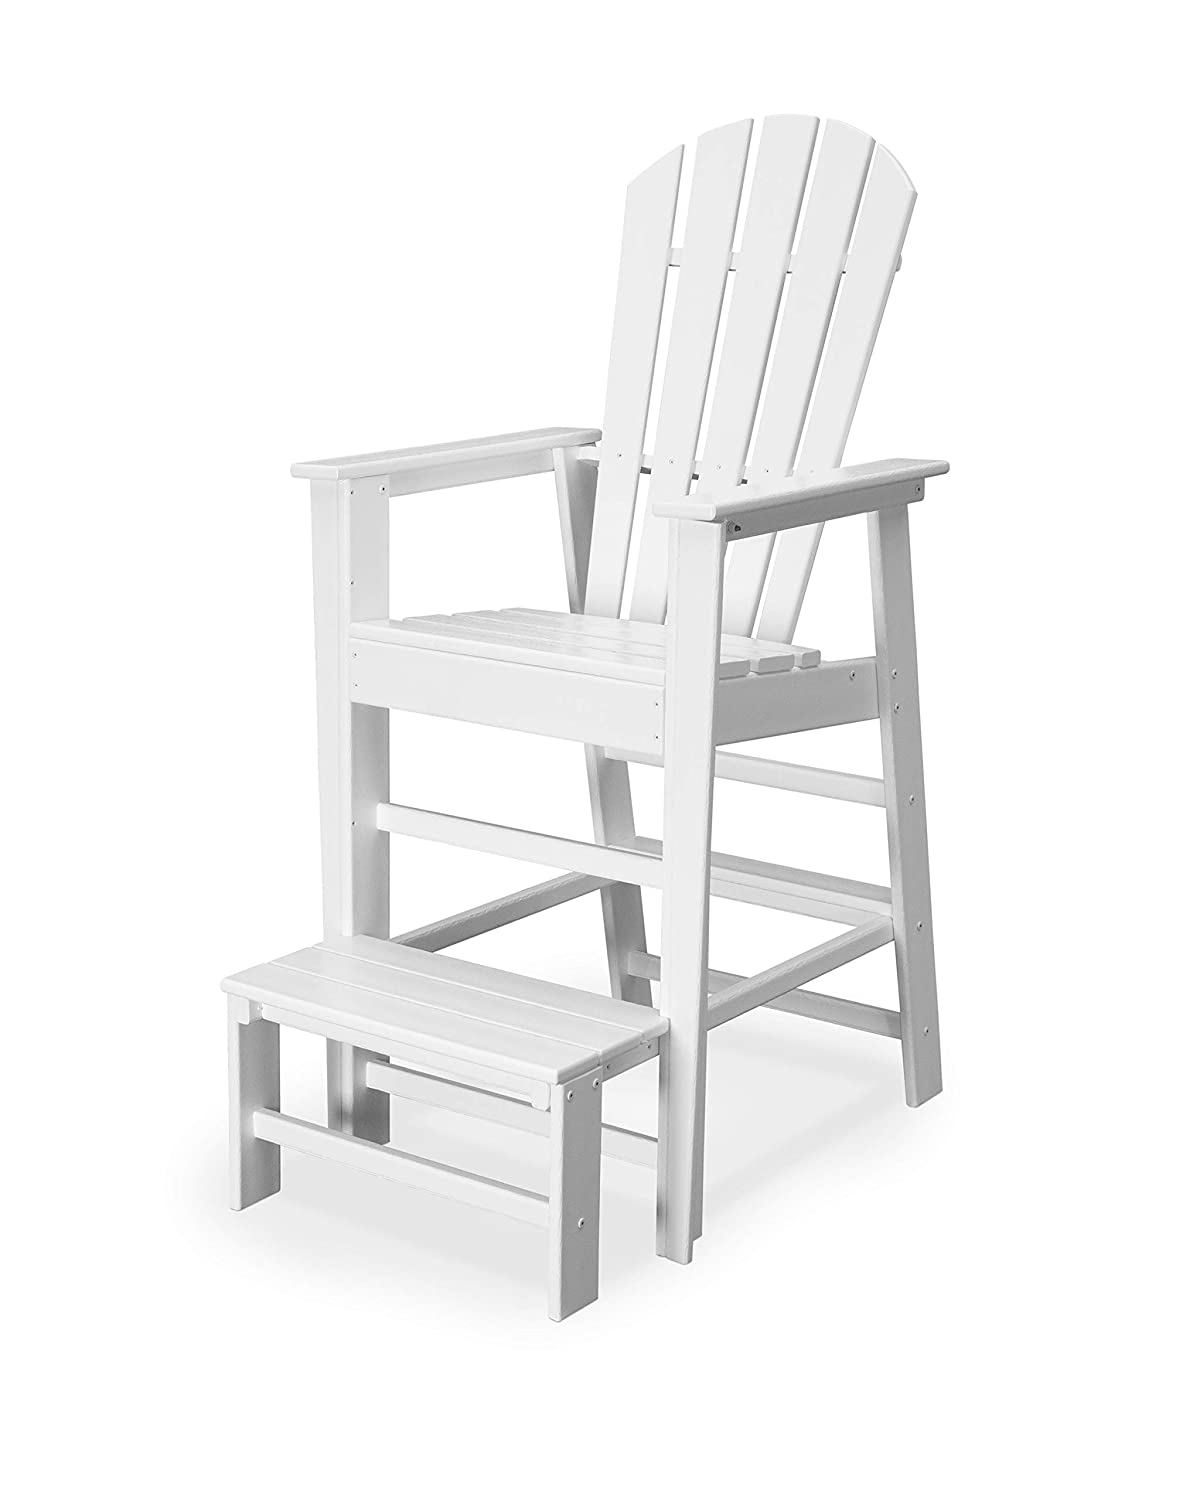 55c18a4cbac Amazon.com   POLYWOOD SBL30WH South Beach Lifeguard Chair